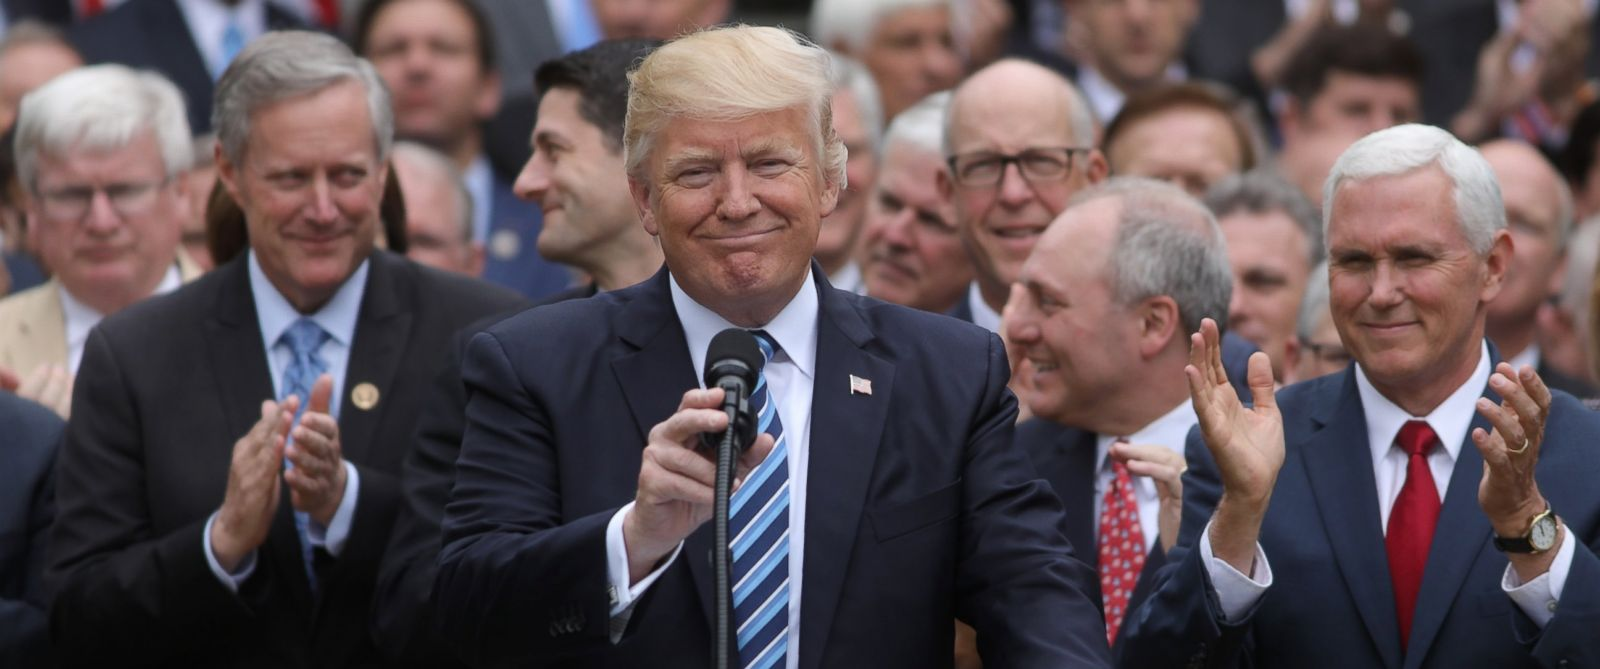 PHOTO: President Donald Trump gathers with Vice President Mike Pence, right, and Congressional Republicans in the Rose Garden of the White House after the House of Representatives approved the American Healthcare Act, May 4, 2017.